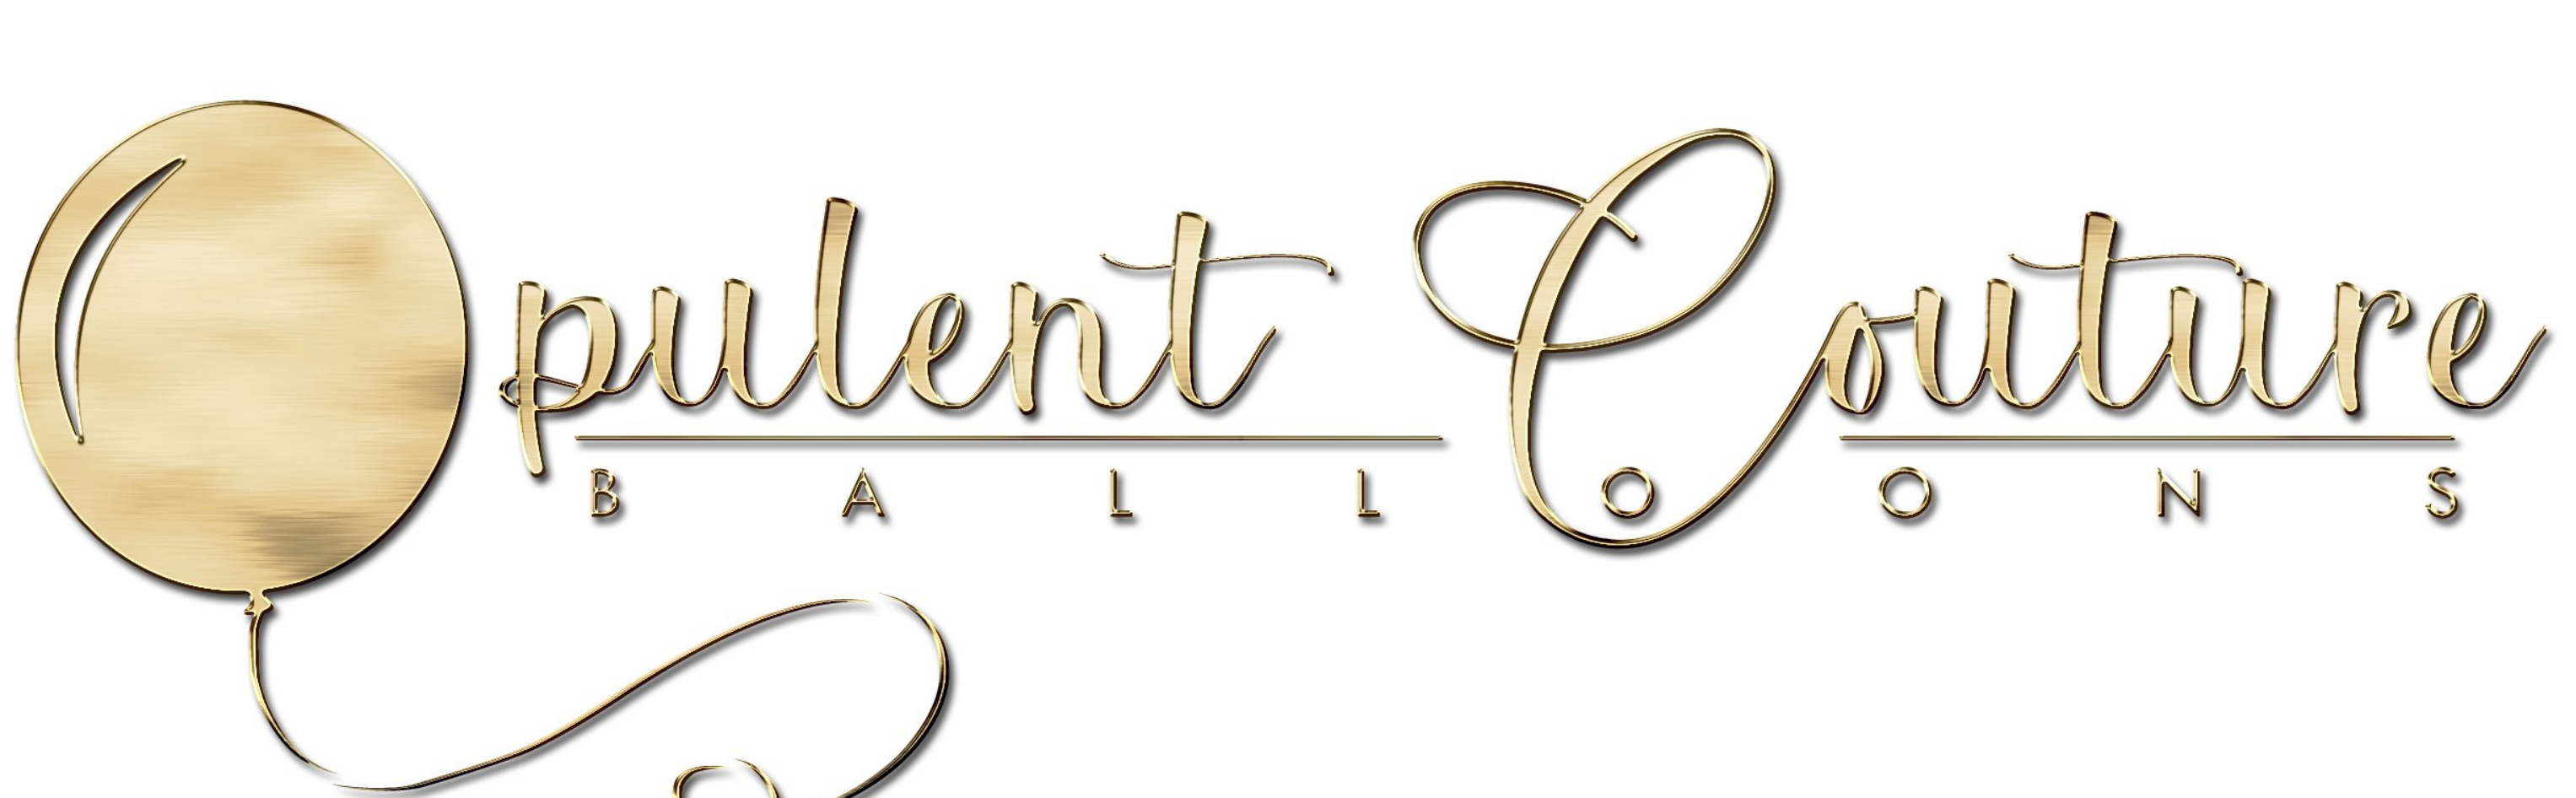 Opulent Couture Balloons Bachelorette Parties, This & That